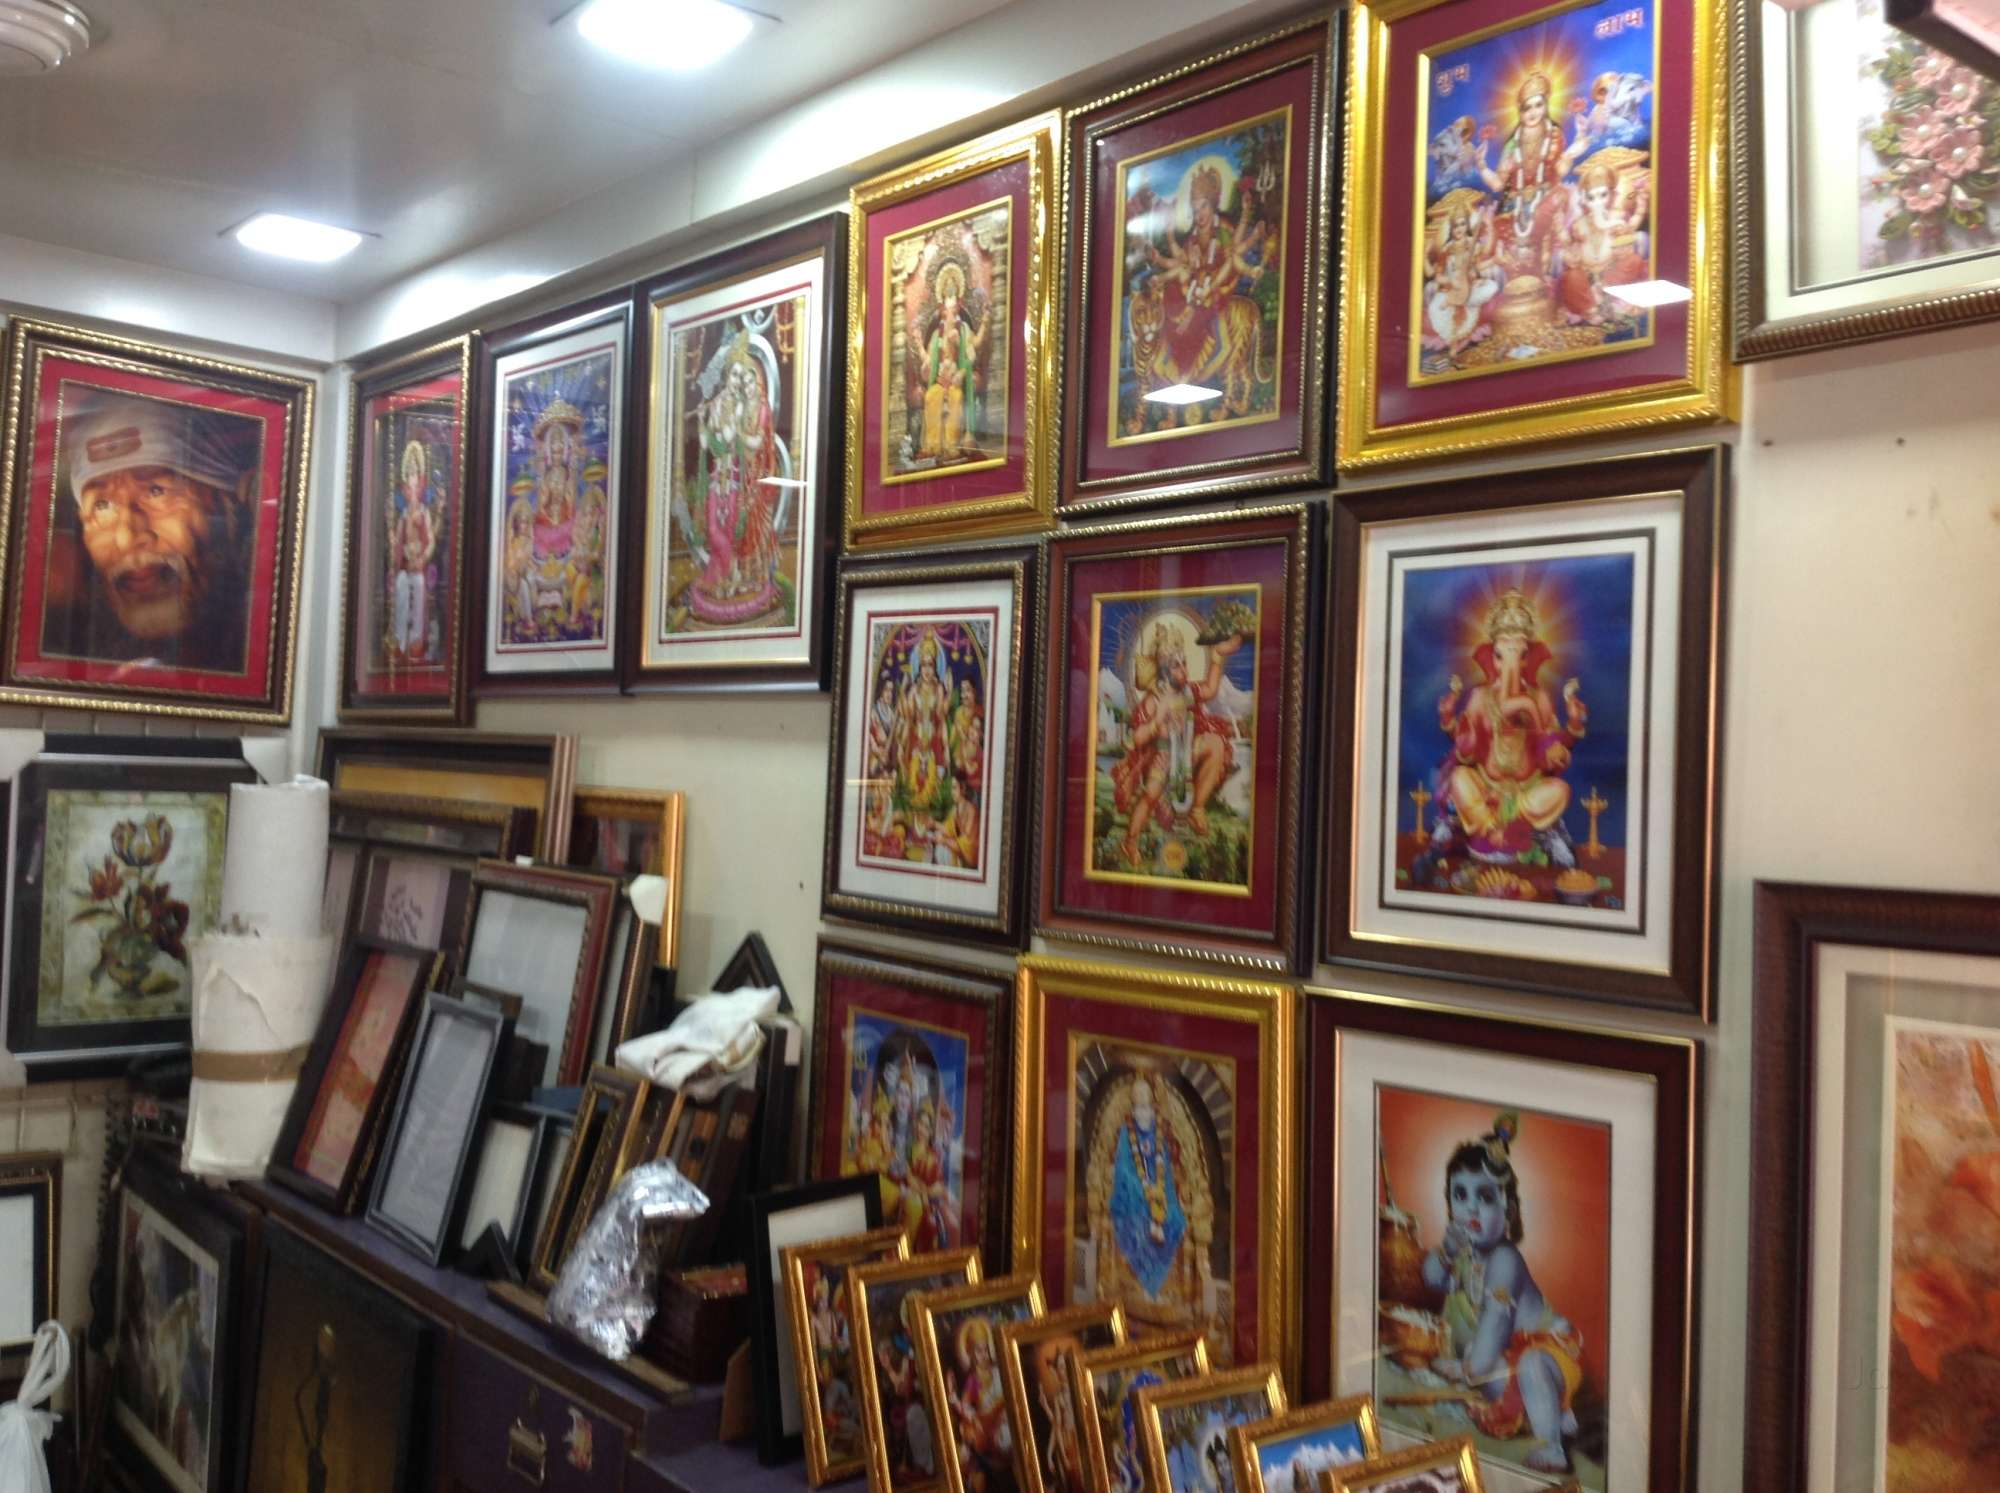 bfe3b9f13db Top 100 Photo Frame Wholesalers in Goregaon East - Best Picture Frame  Wholesalers Mumbai - Justdial